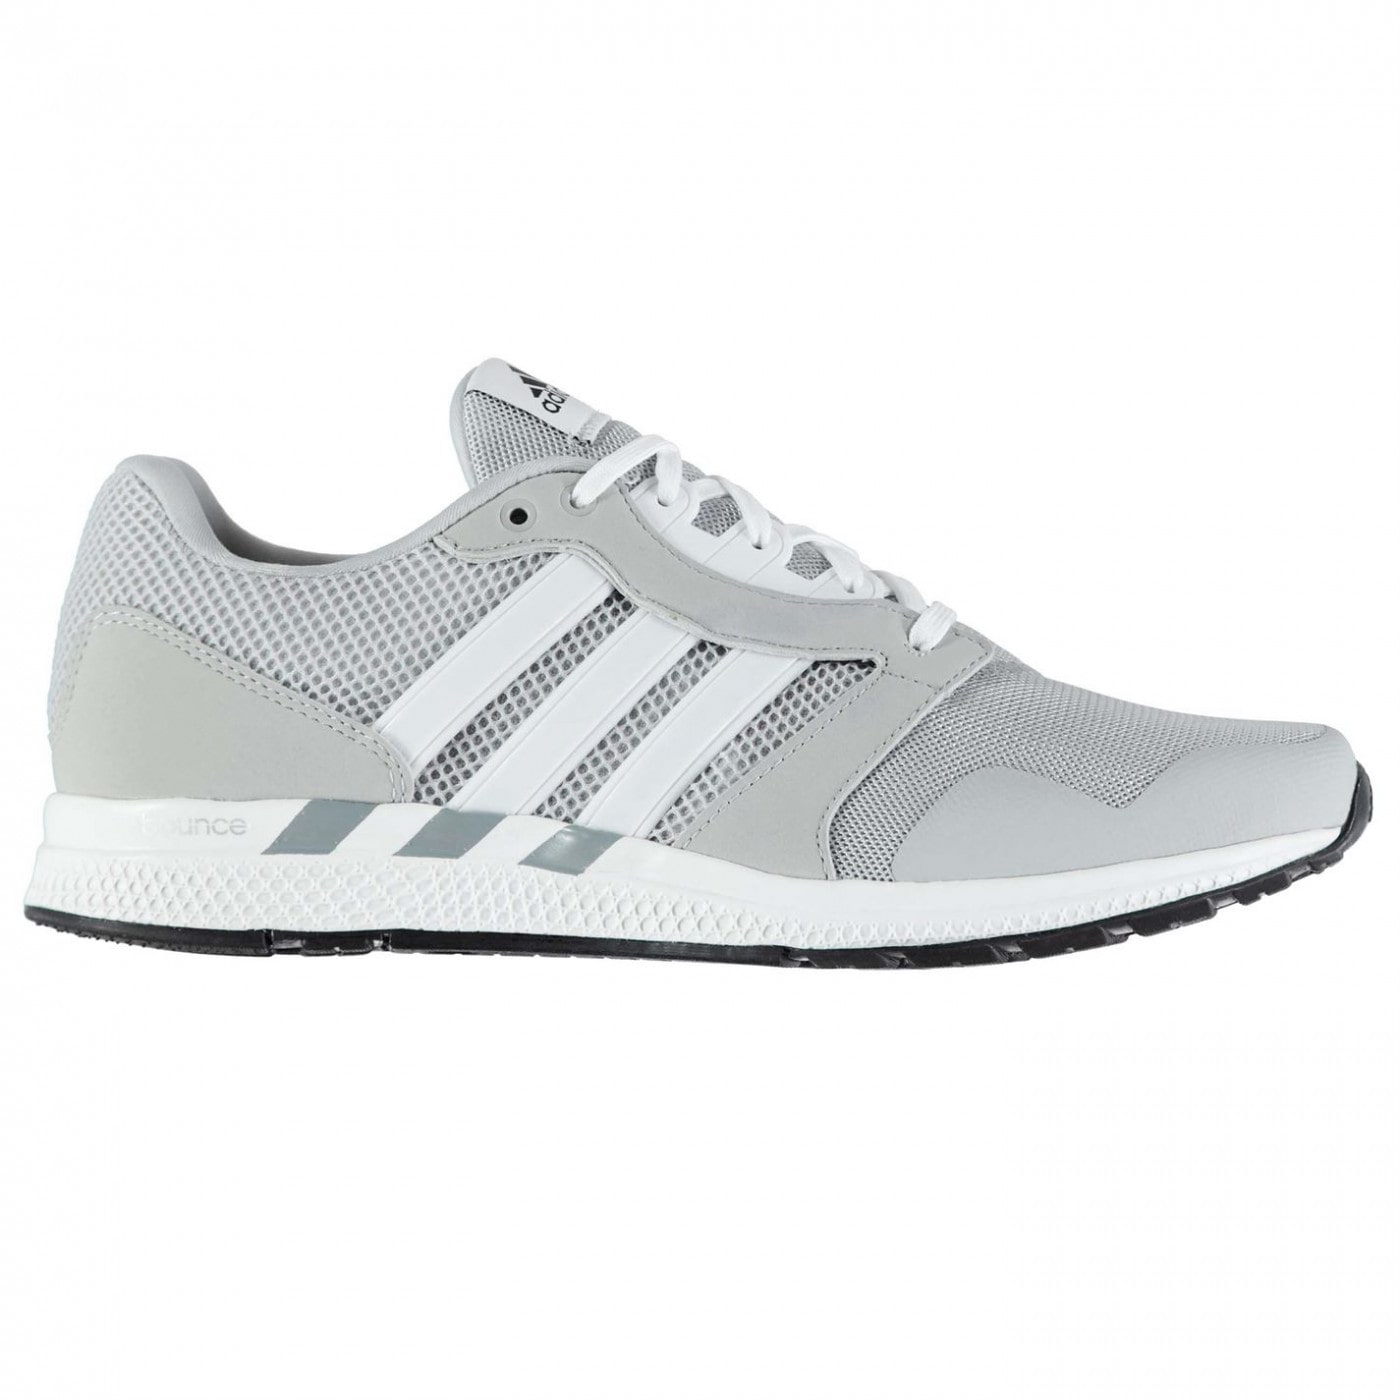 Adidas Equipment 16 Mens Trainers